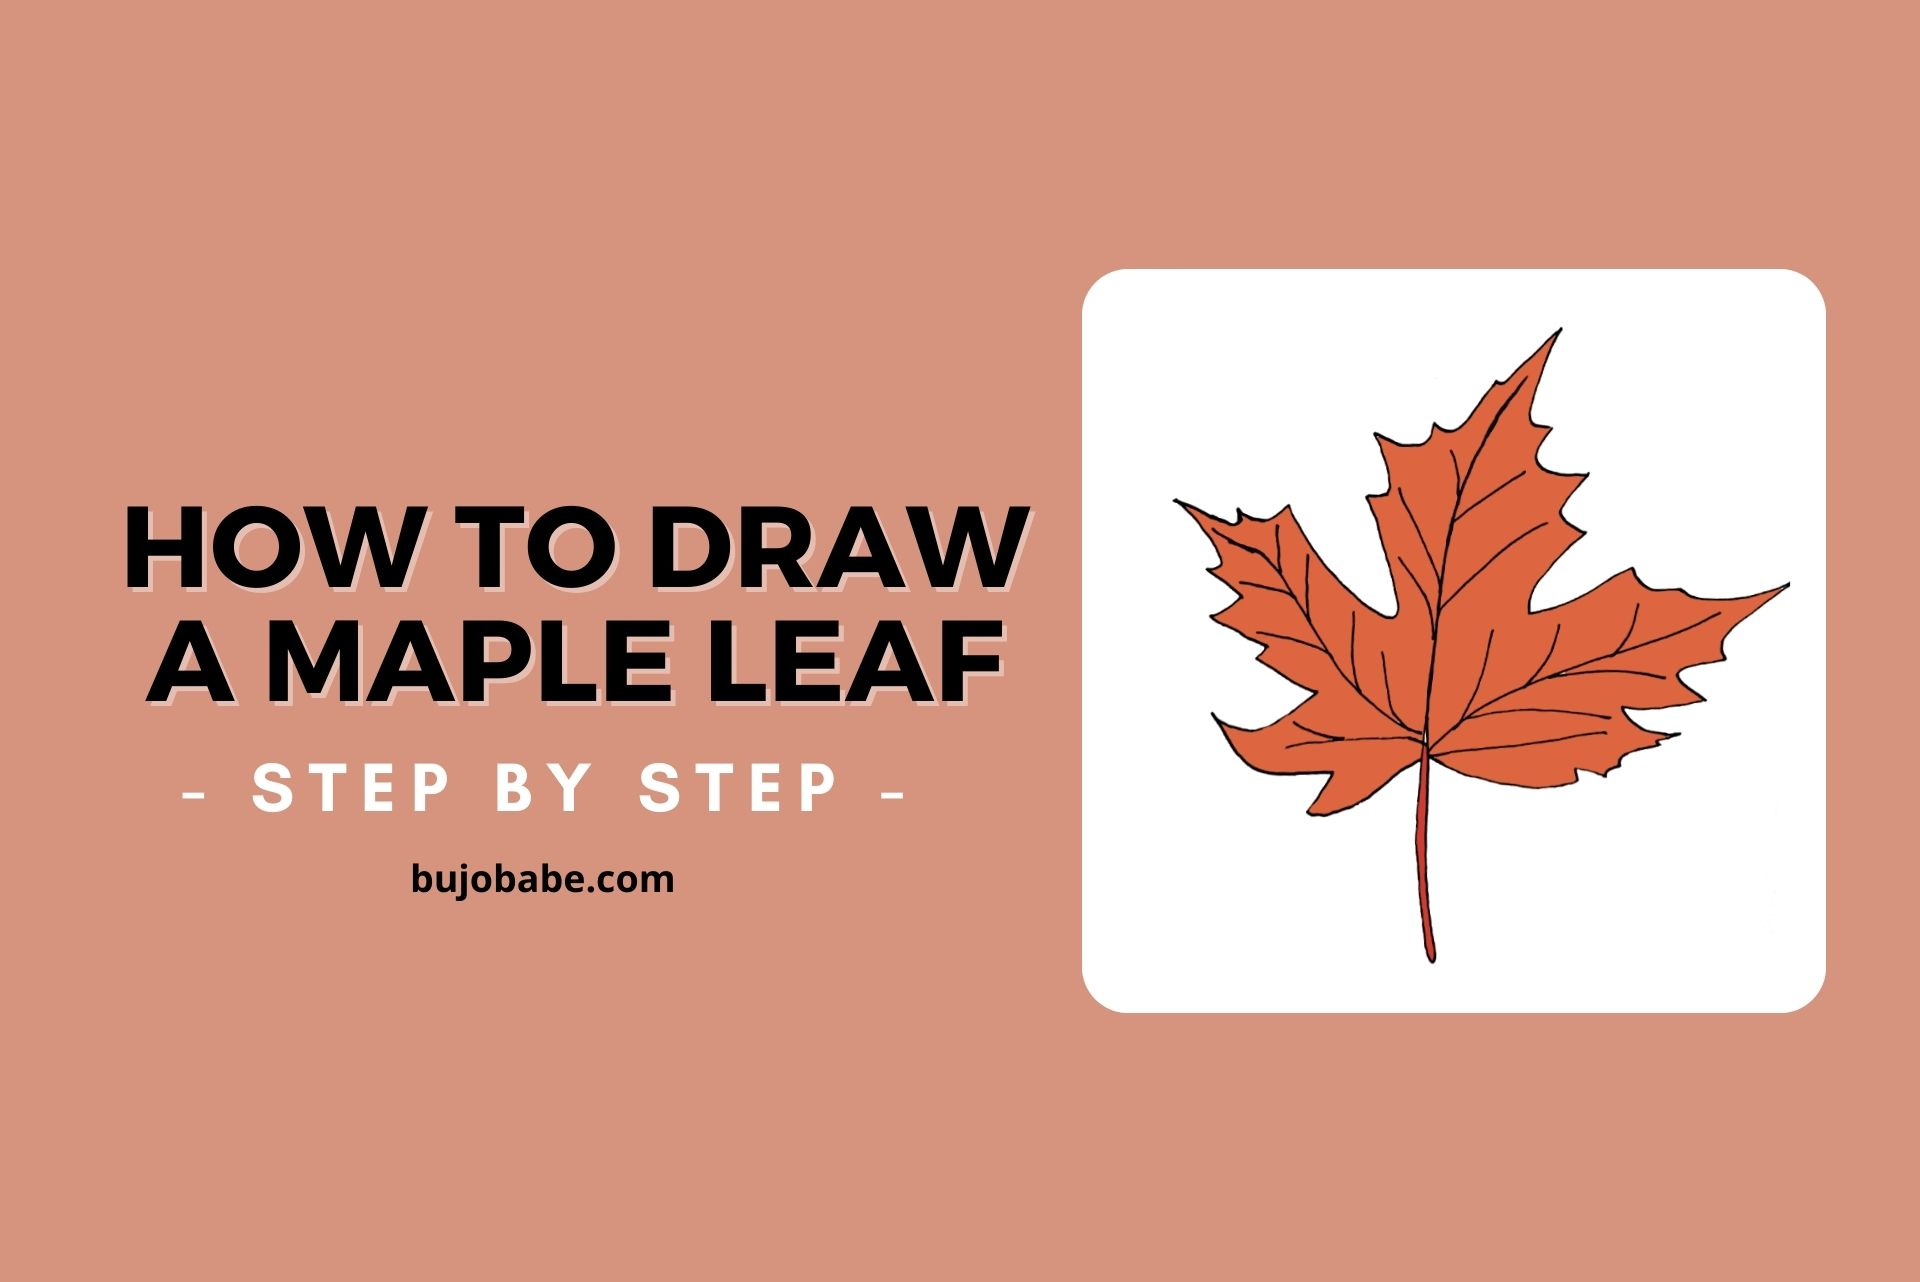 how to draw a maple leaf step by step